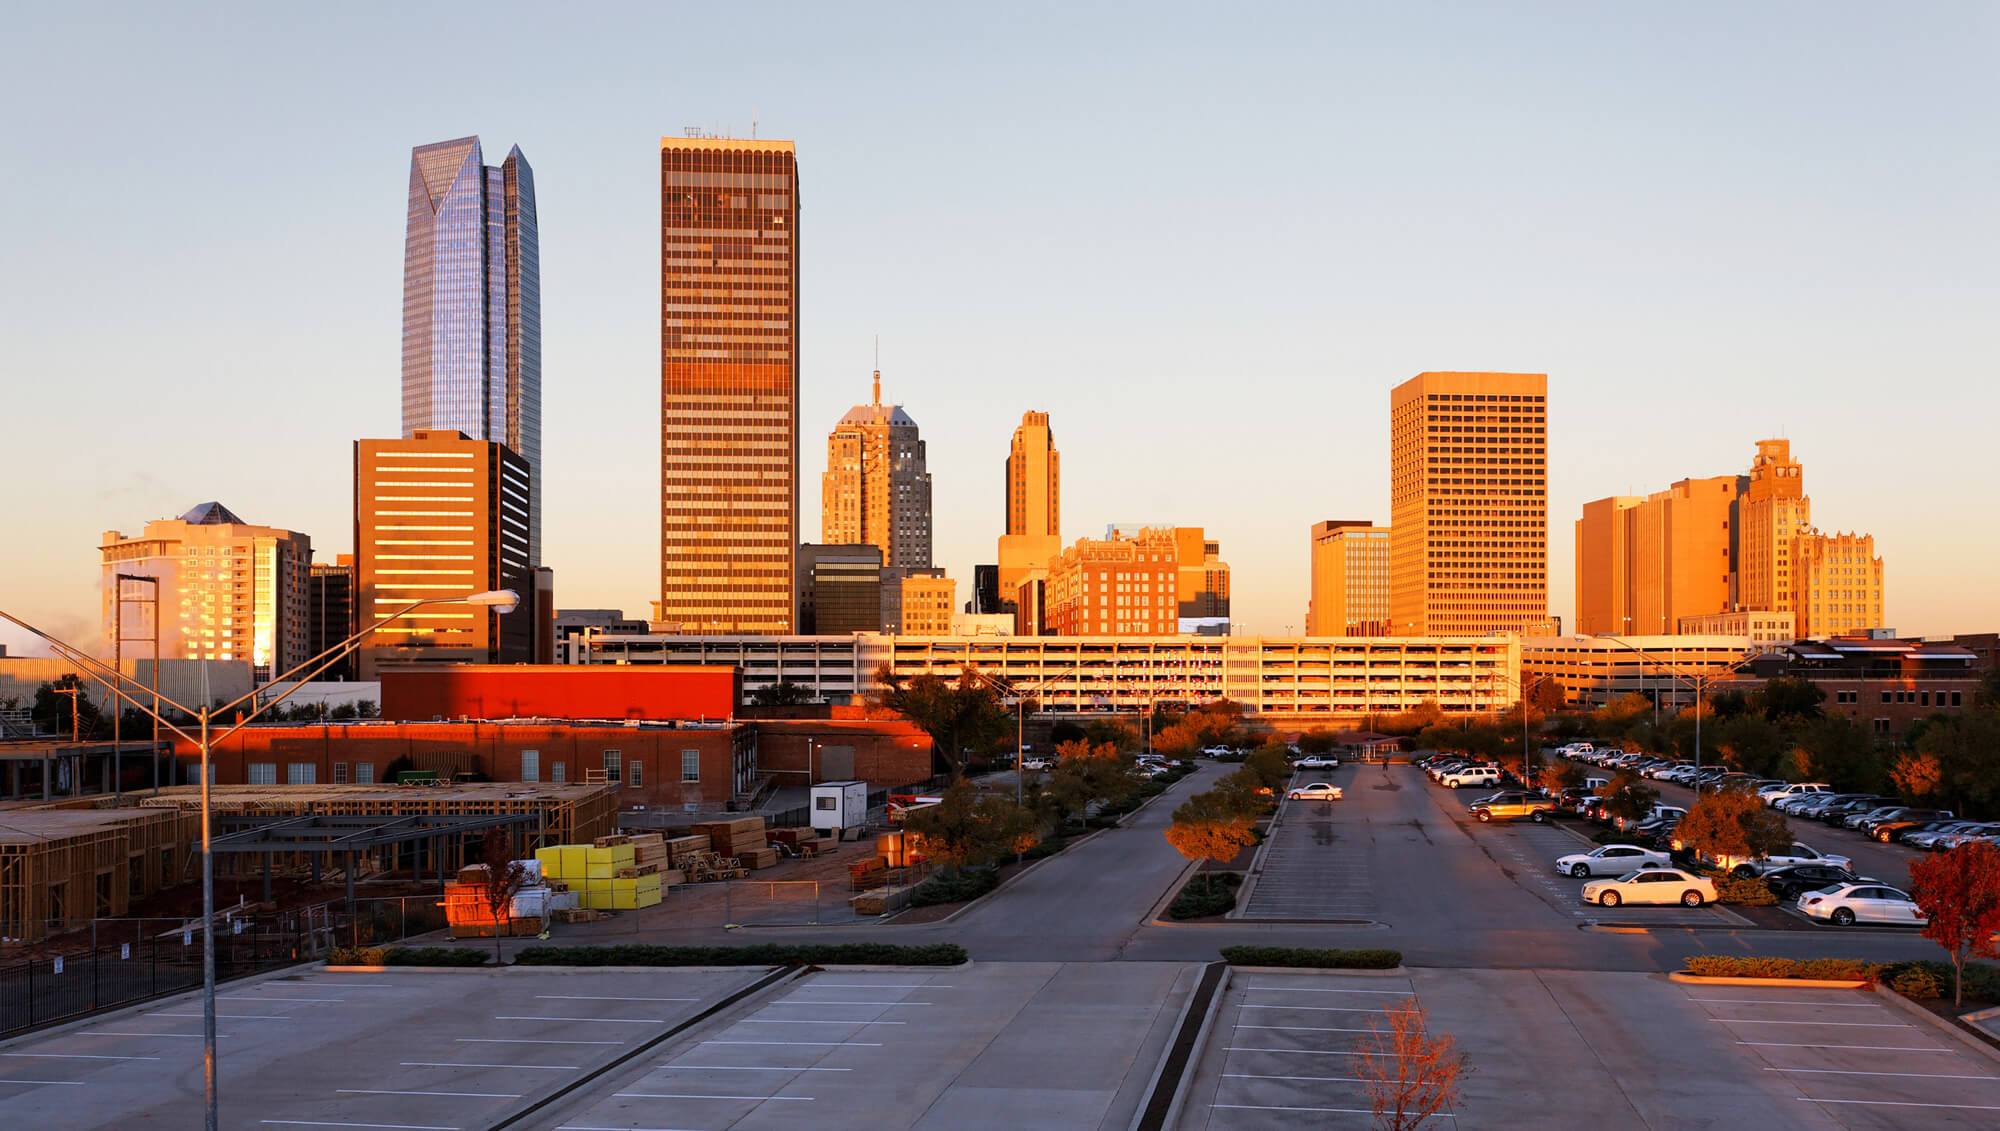 the skyline of Oklahoma City